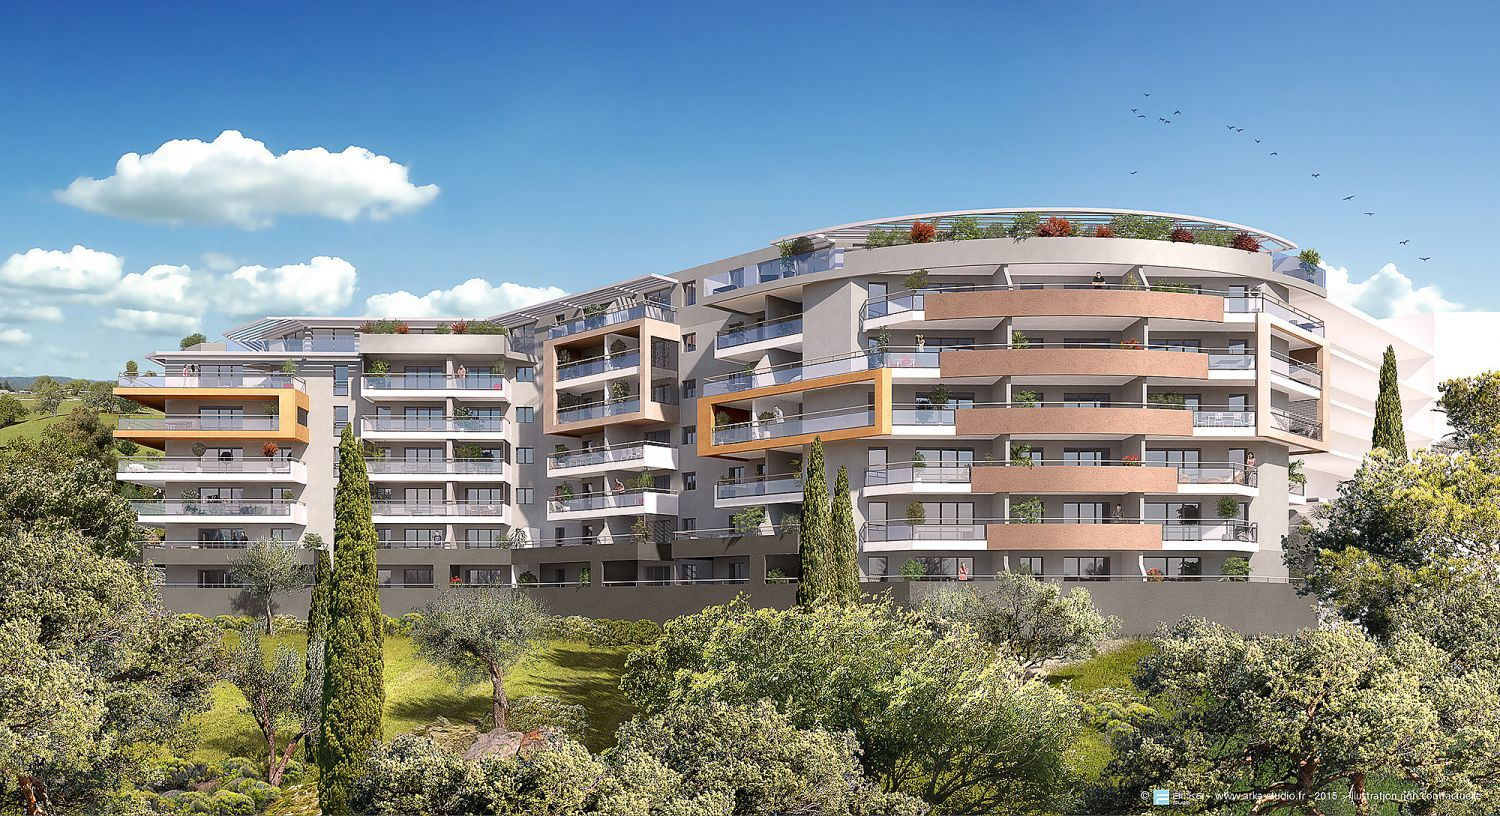 RESIDENCE GENOVESE - BAT A4 - Immeuble OMIGNA -